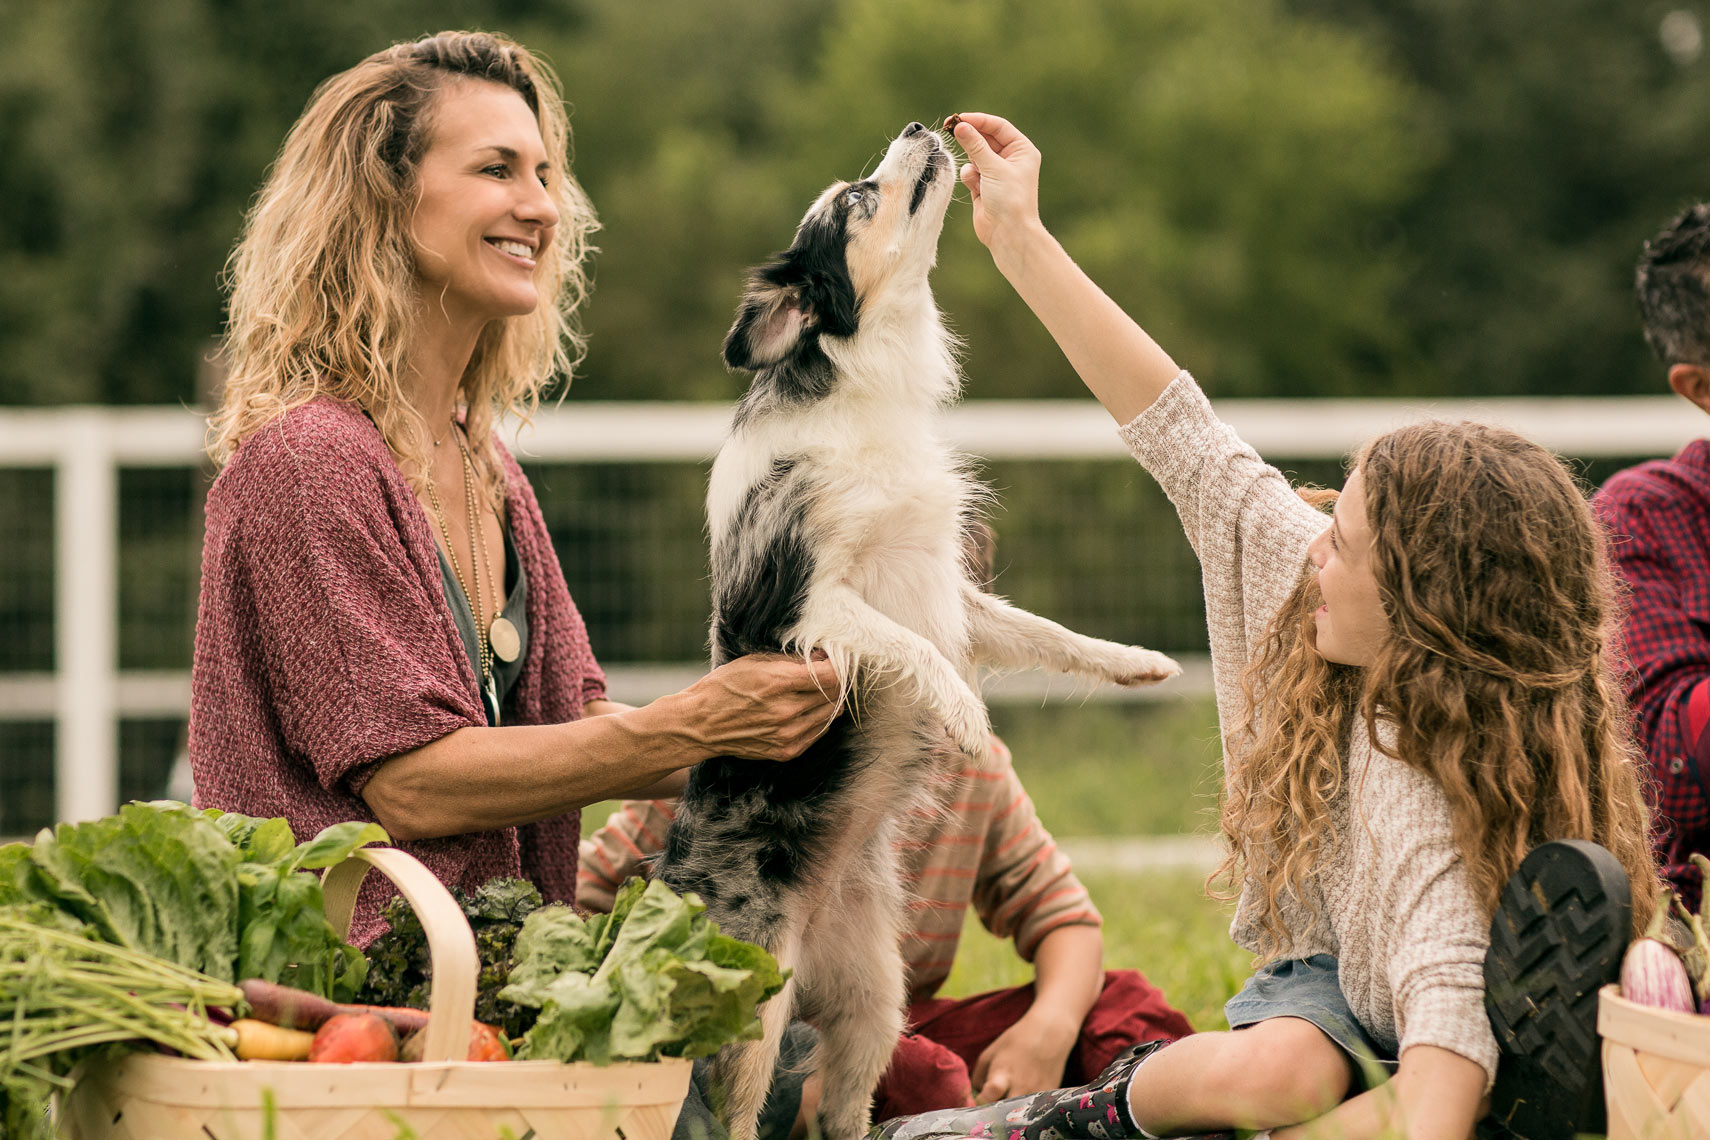 Lifestyle Photo of Family with Dog at Farmers Market by Jason Risner